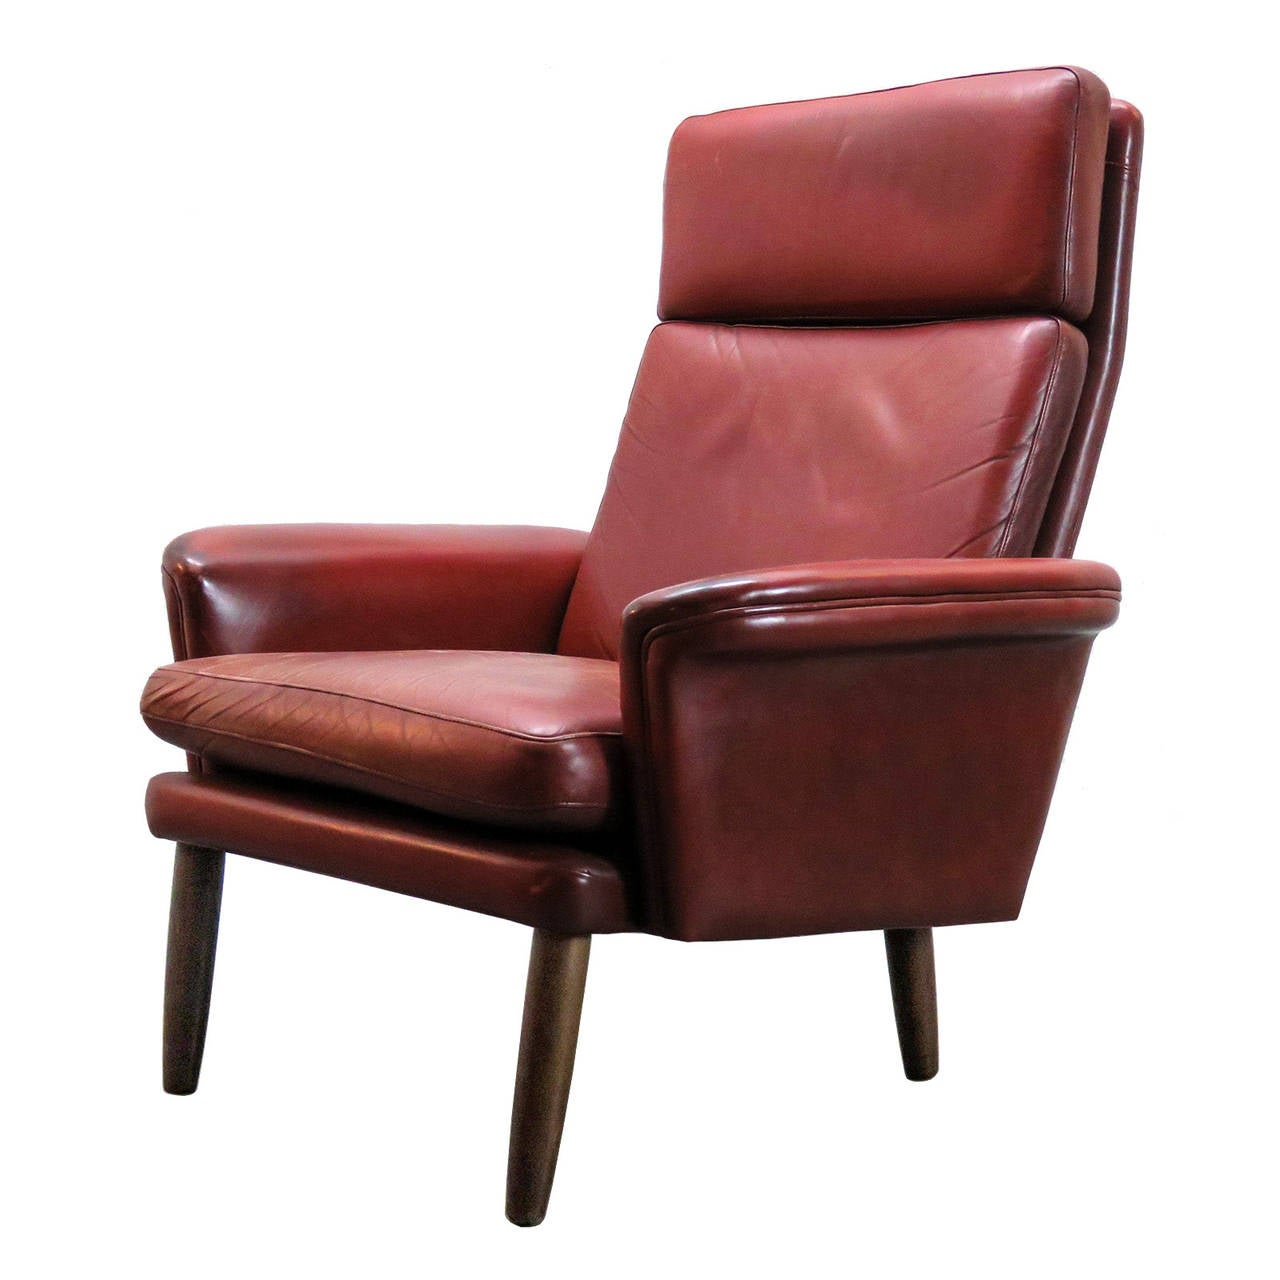 High Back Lounge Chair Danish High Back Leather Lounge Chair For Sale At 1stdibs